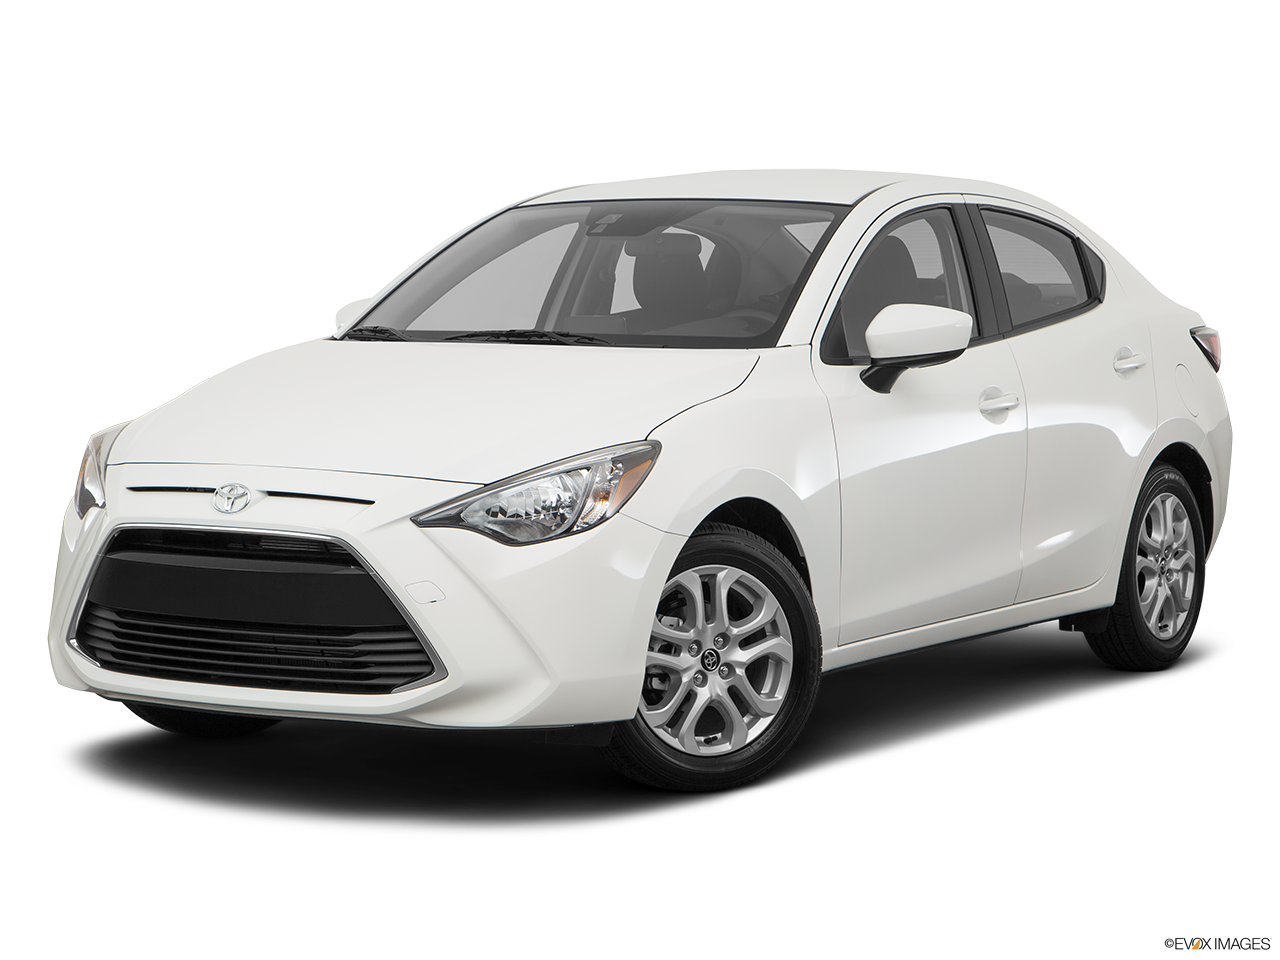 2017 toyota yaris ia for sale near san diego toyota of el cajon. Black Bedroom Furniture Sets. Home Design Ideas